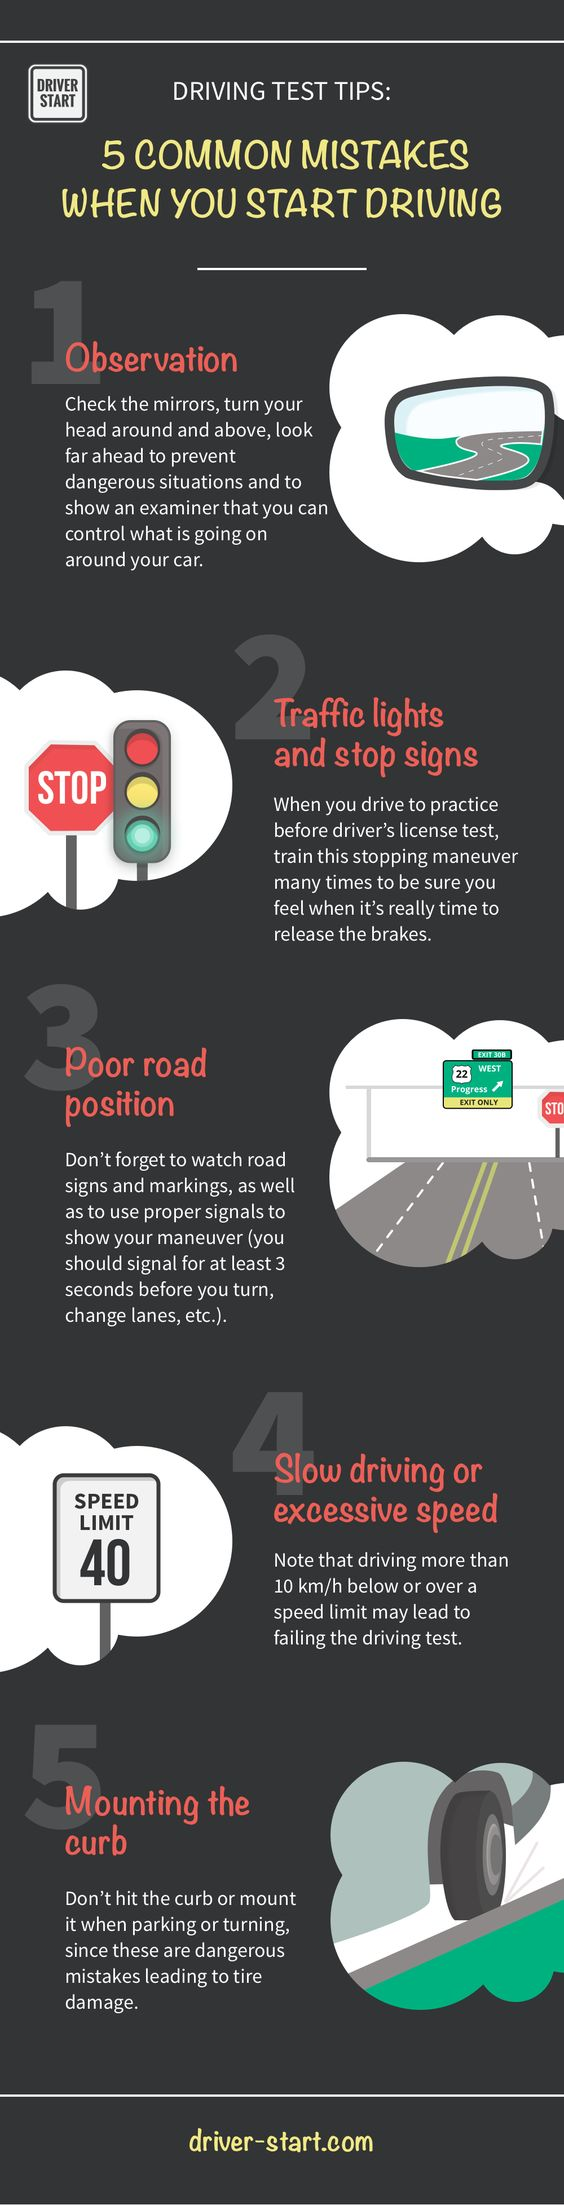 5 safe driving tips